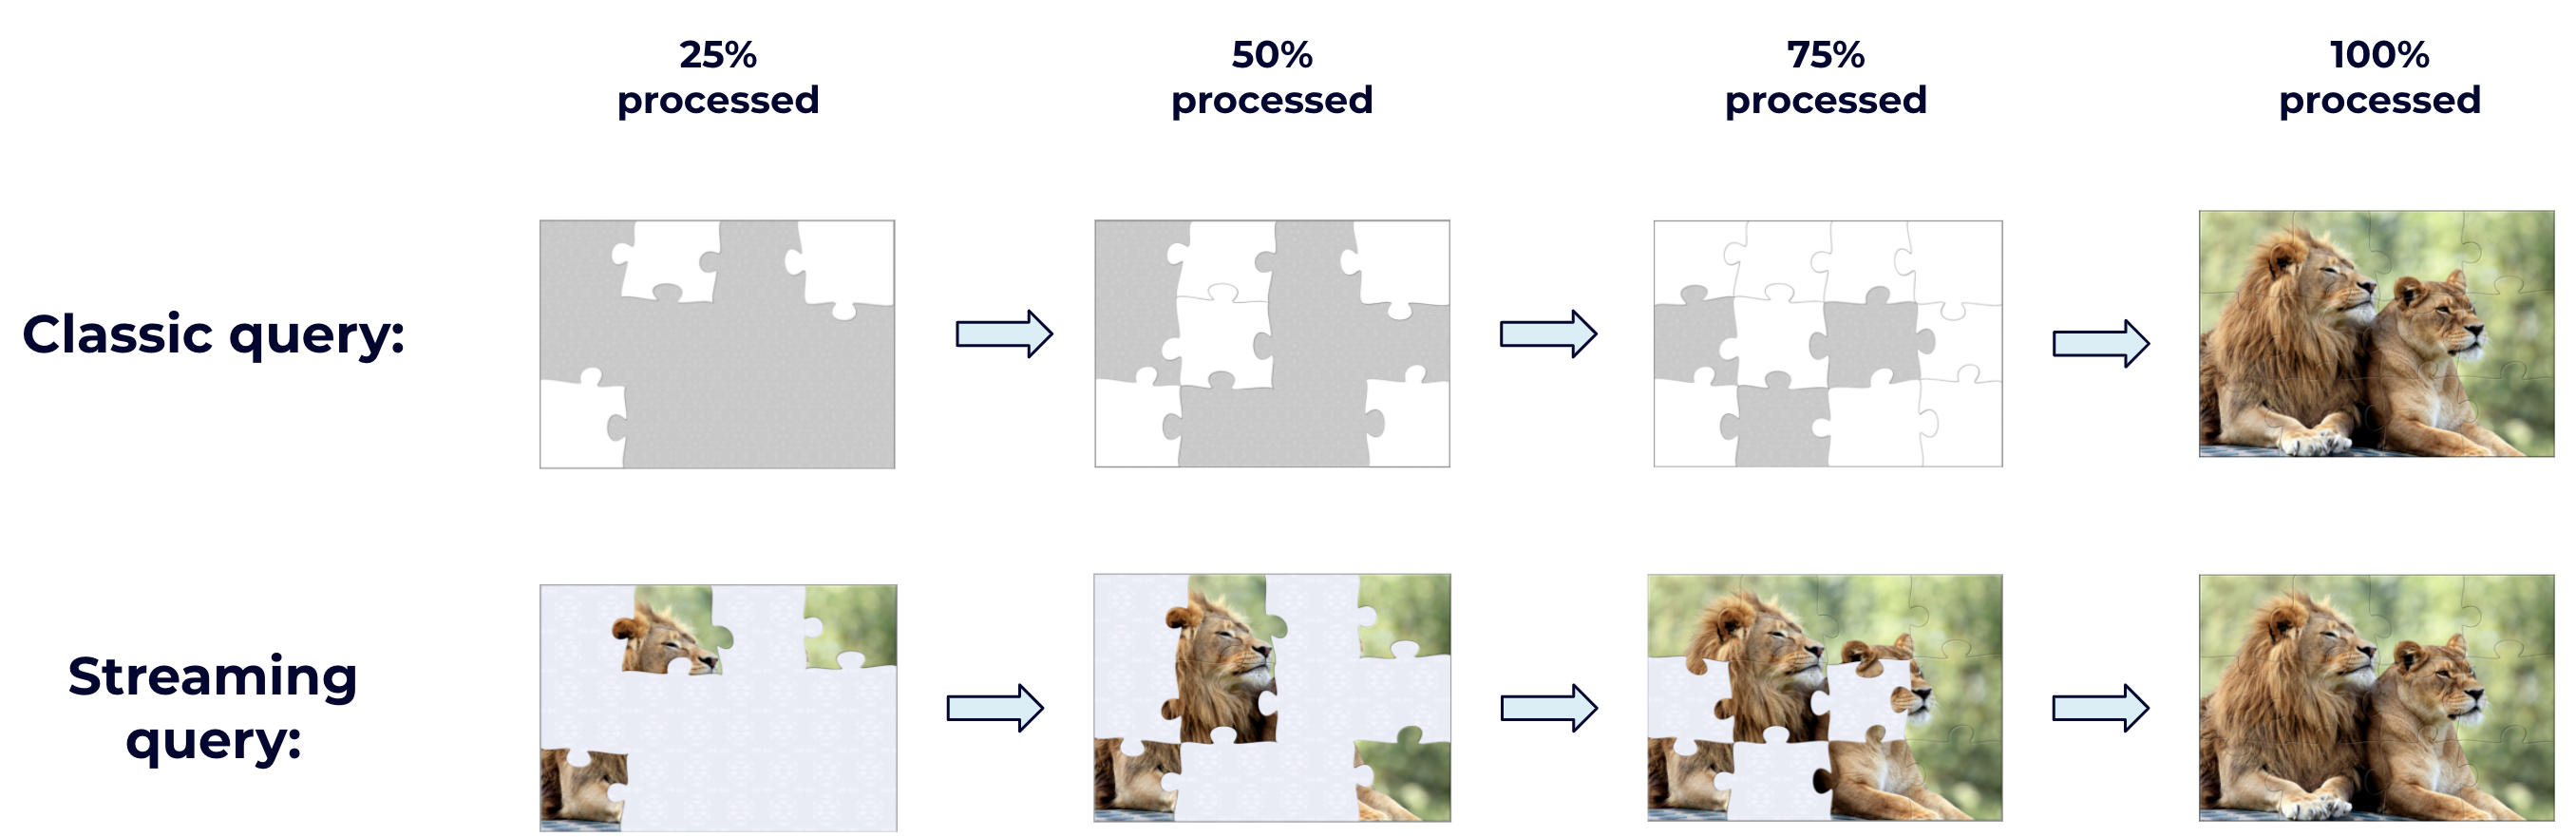 Streaming processing puzzle